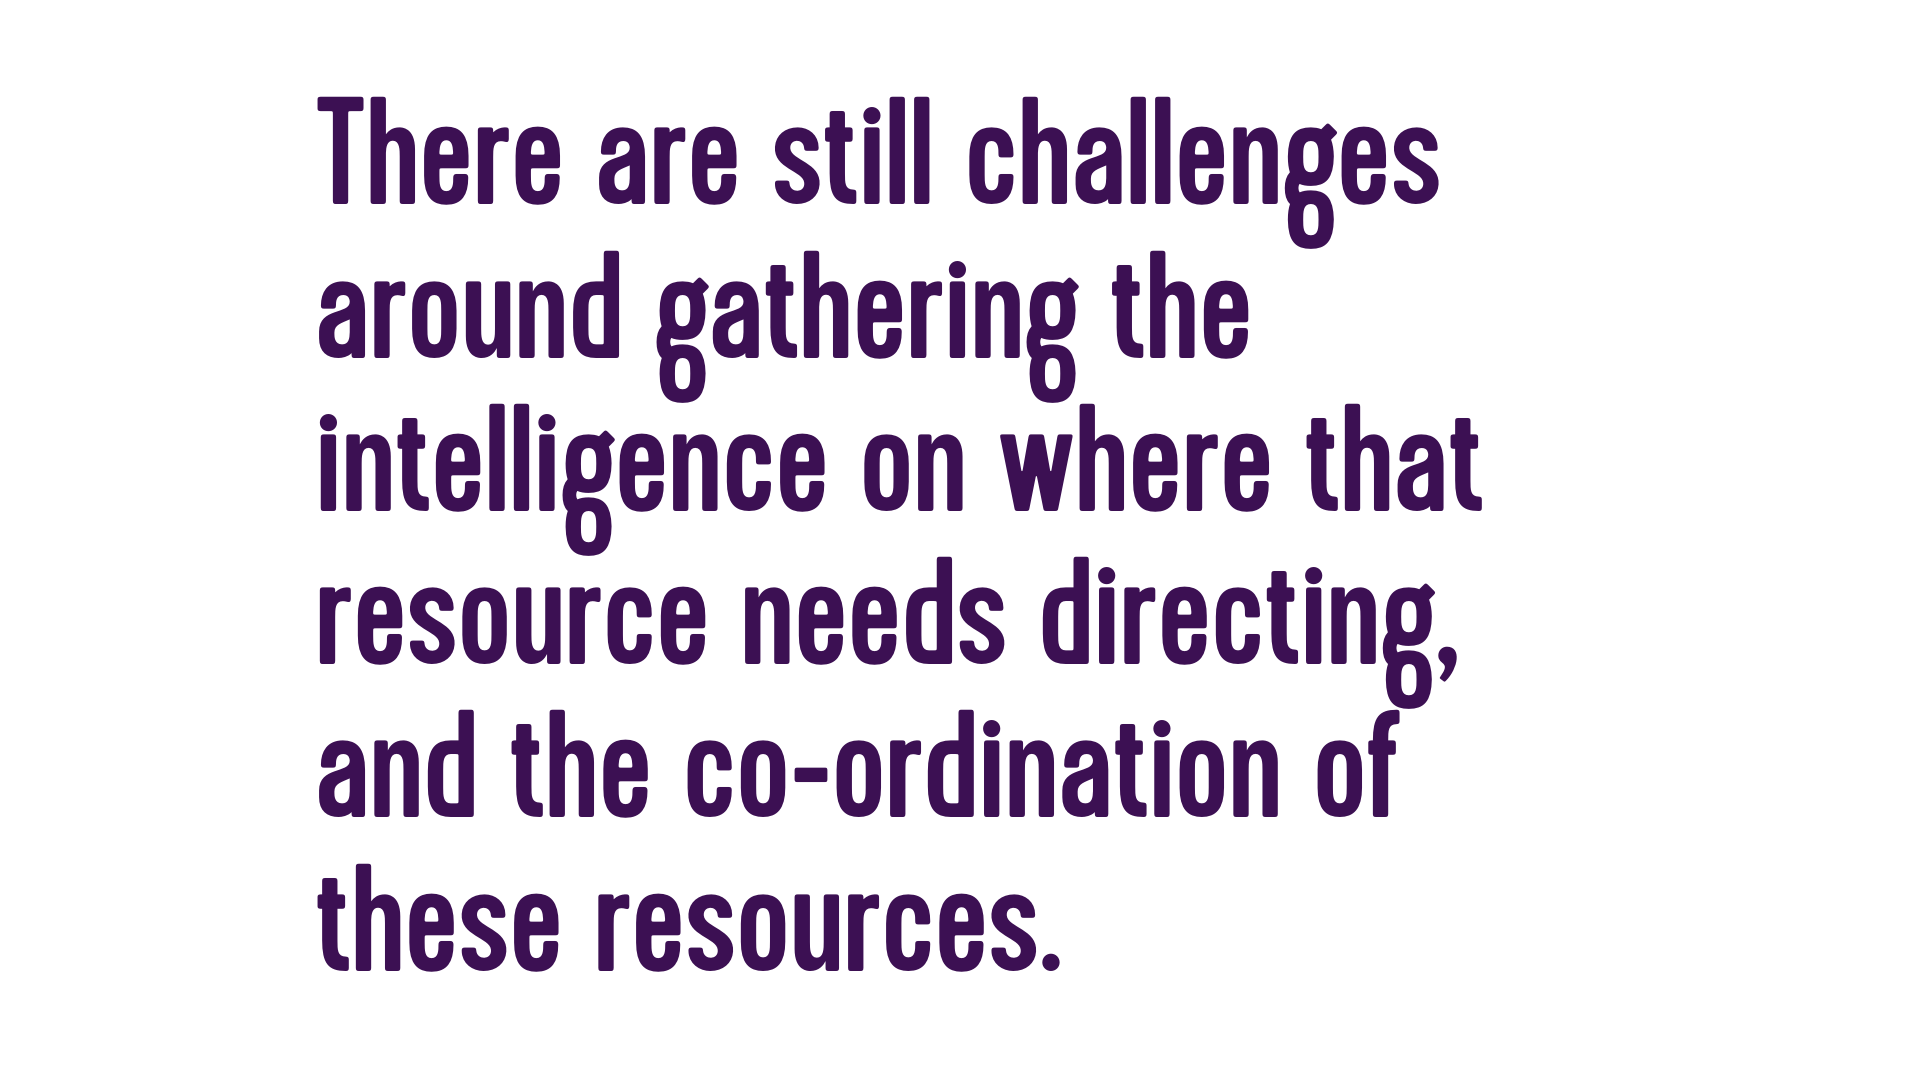 There are still challenges around gathering the intelligence on where that resource needs directing, and the co-ordination of these resources.